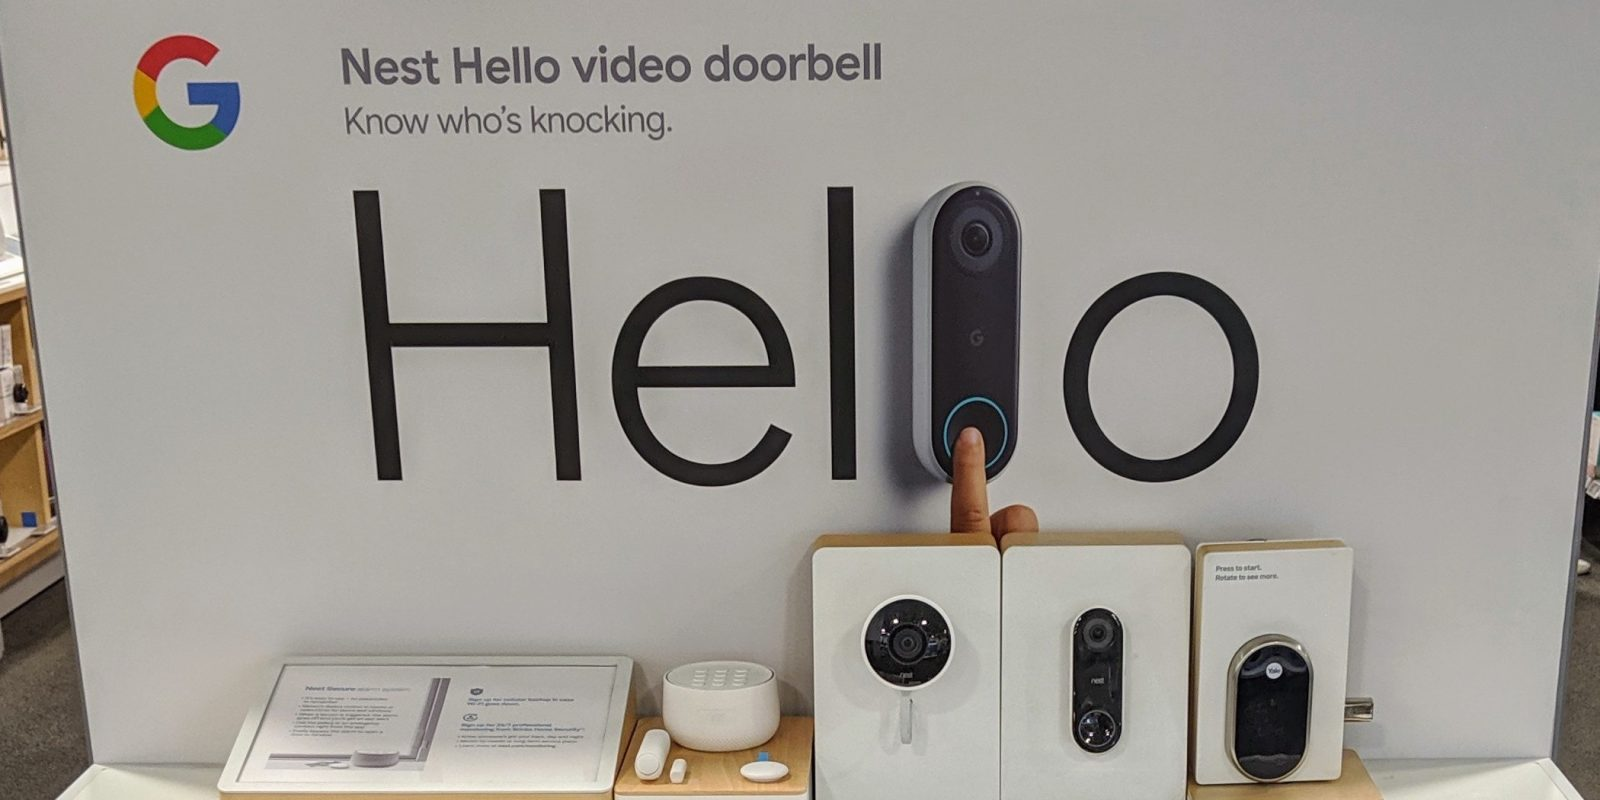 Google Nest rebrand stickers arrive on Nest Cam, Thermostat packaging